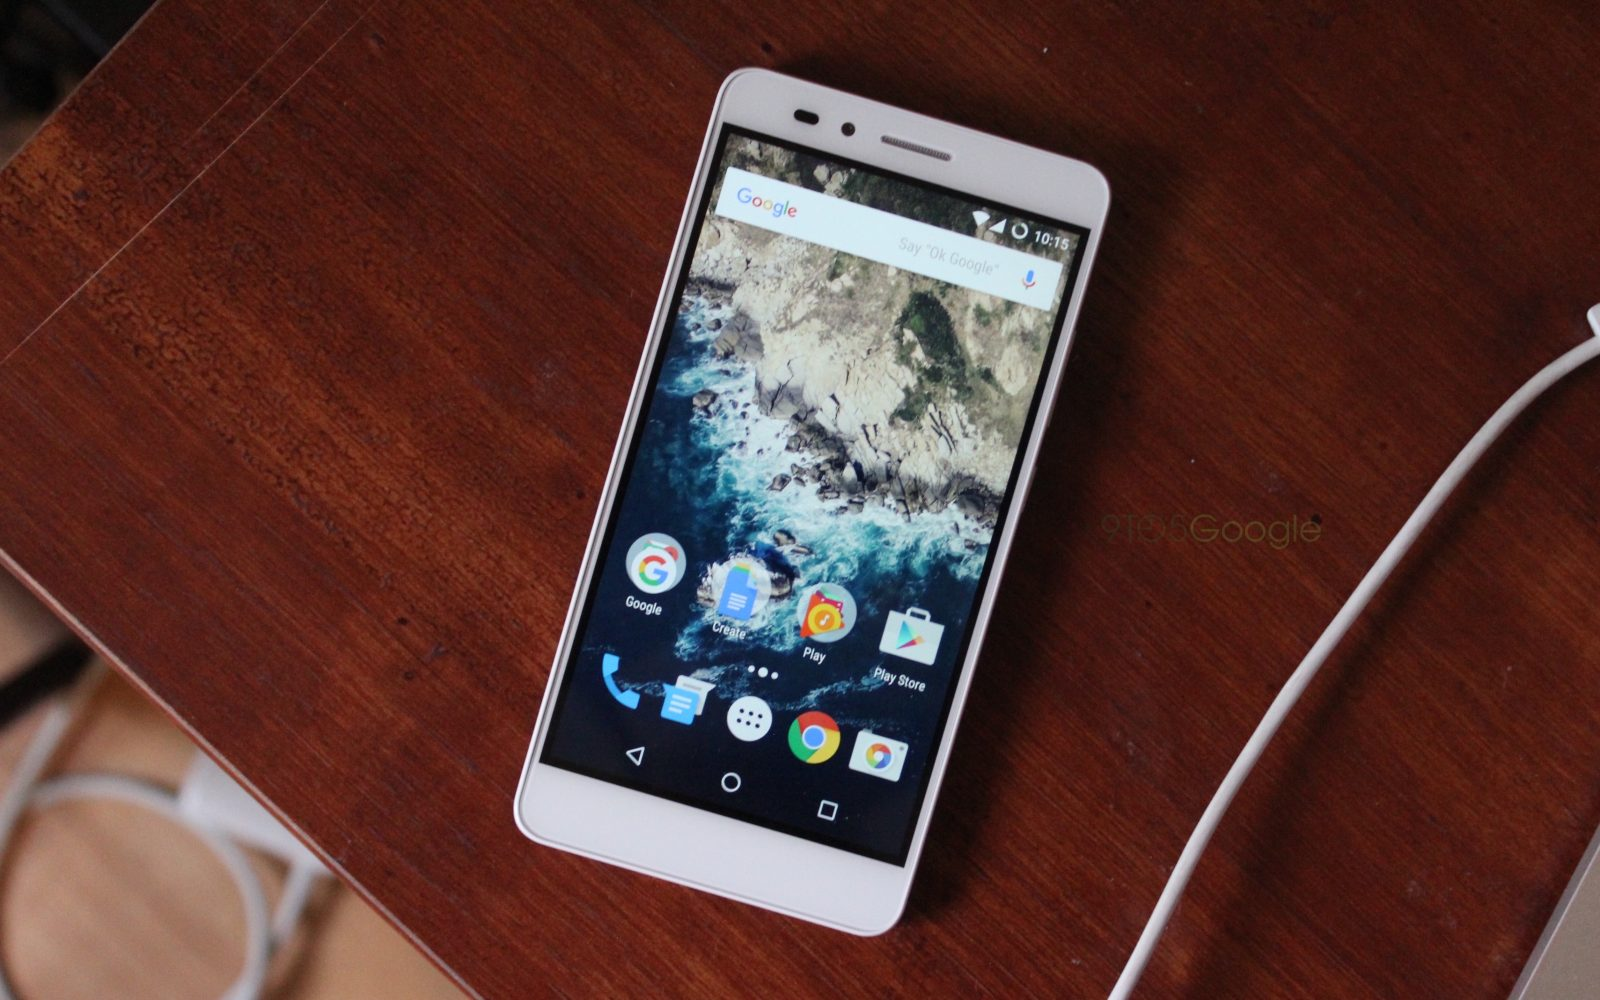 Opinion: CyanogenMod improves the Honor 5X enough to make it my